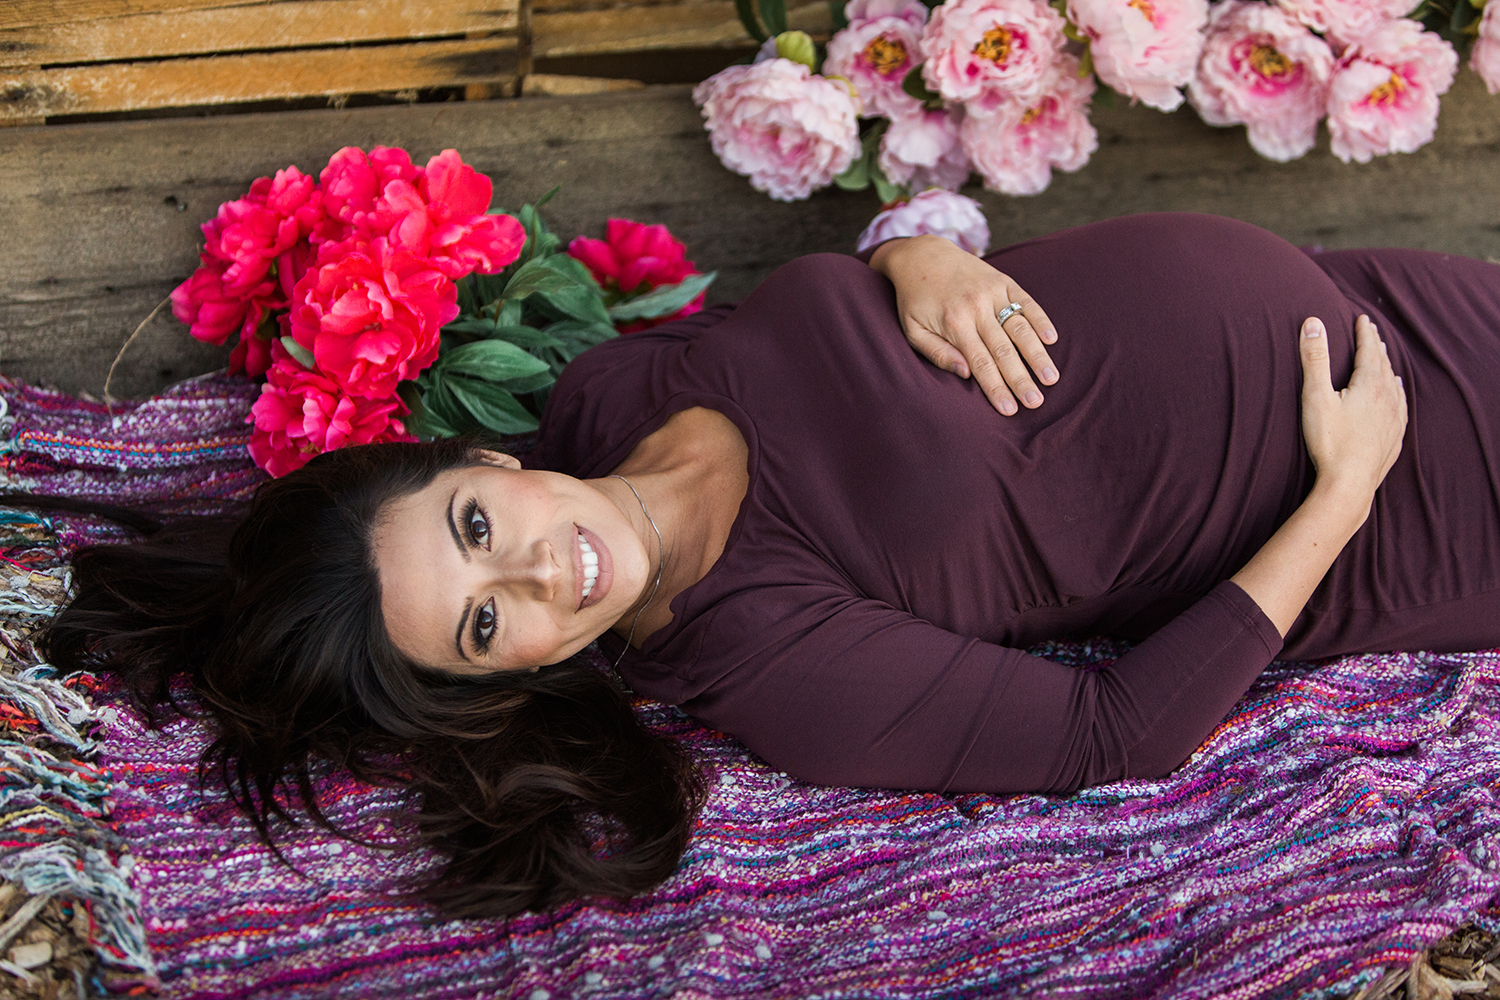 Dena_Rooney_Maternity_Portraits_008.jpg